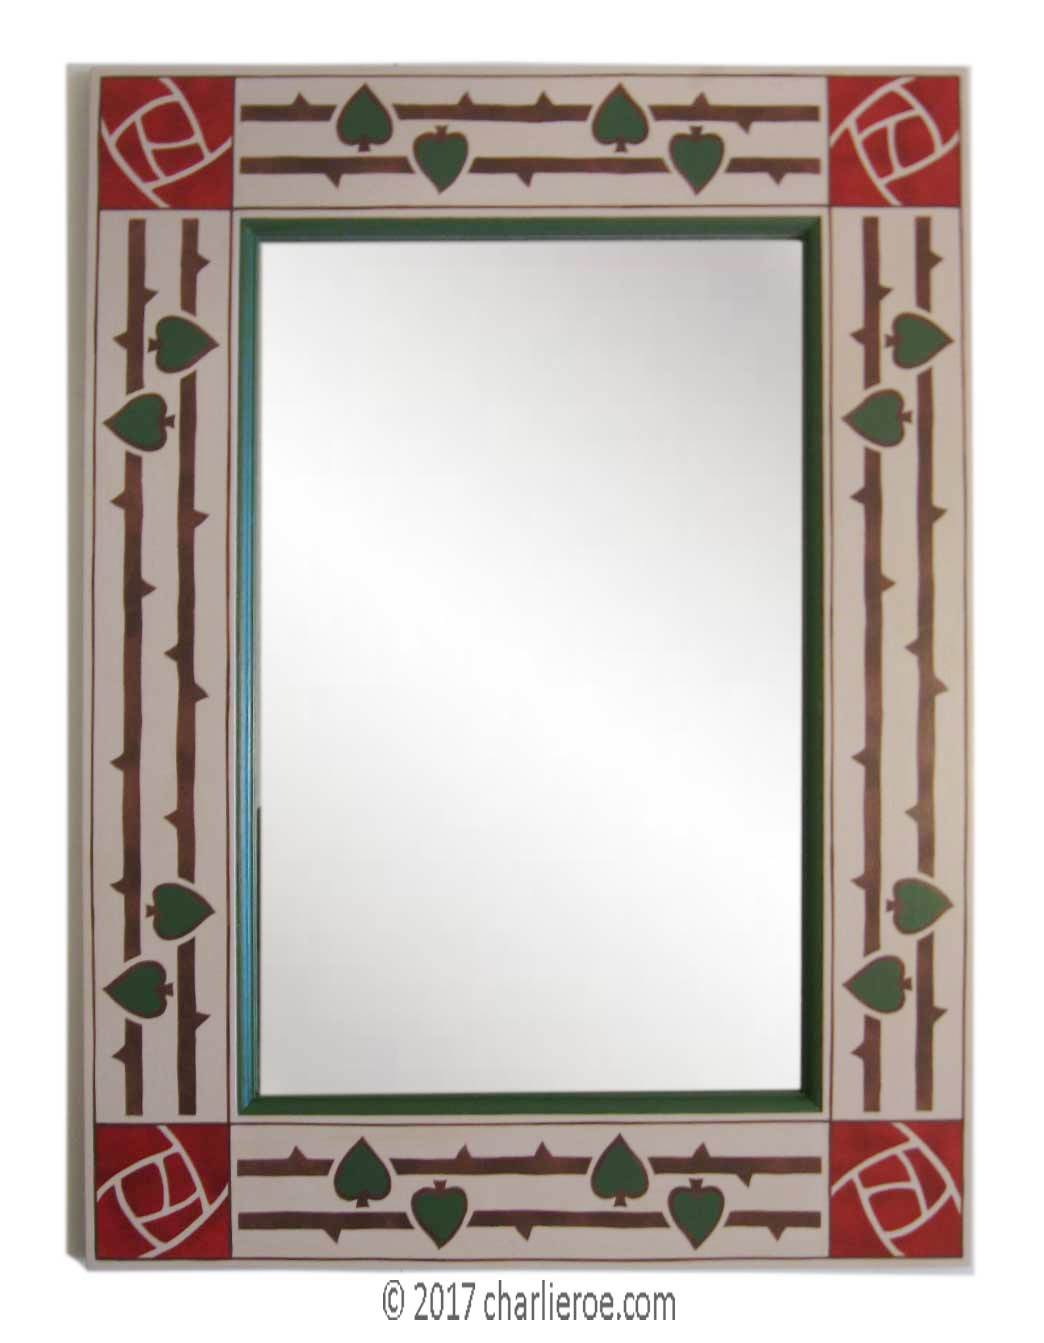 New Arts & Crafts Movement style decorative painted mirror frames